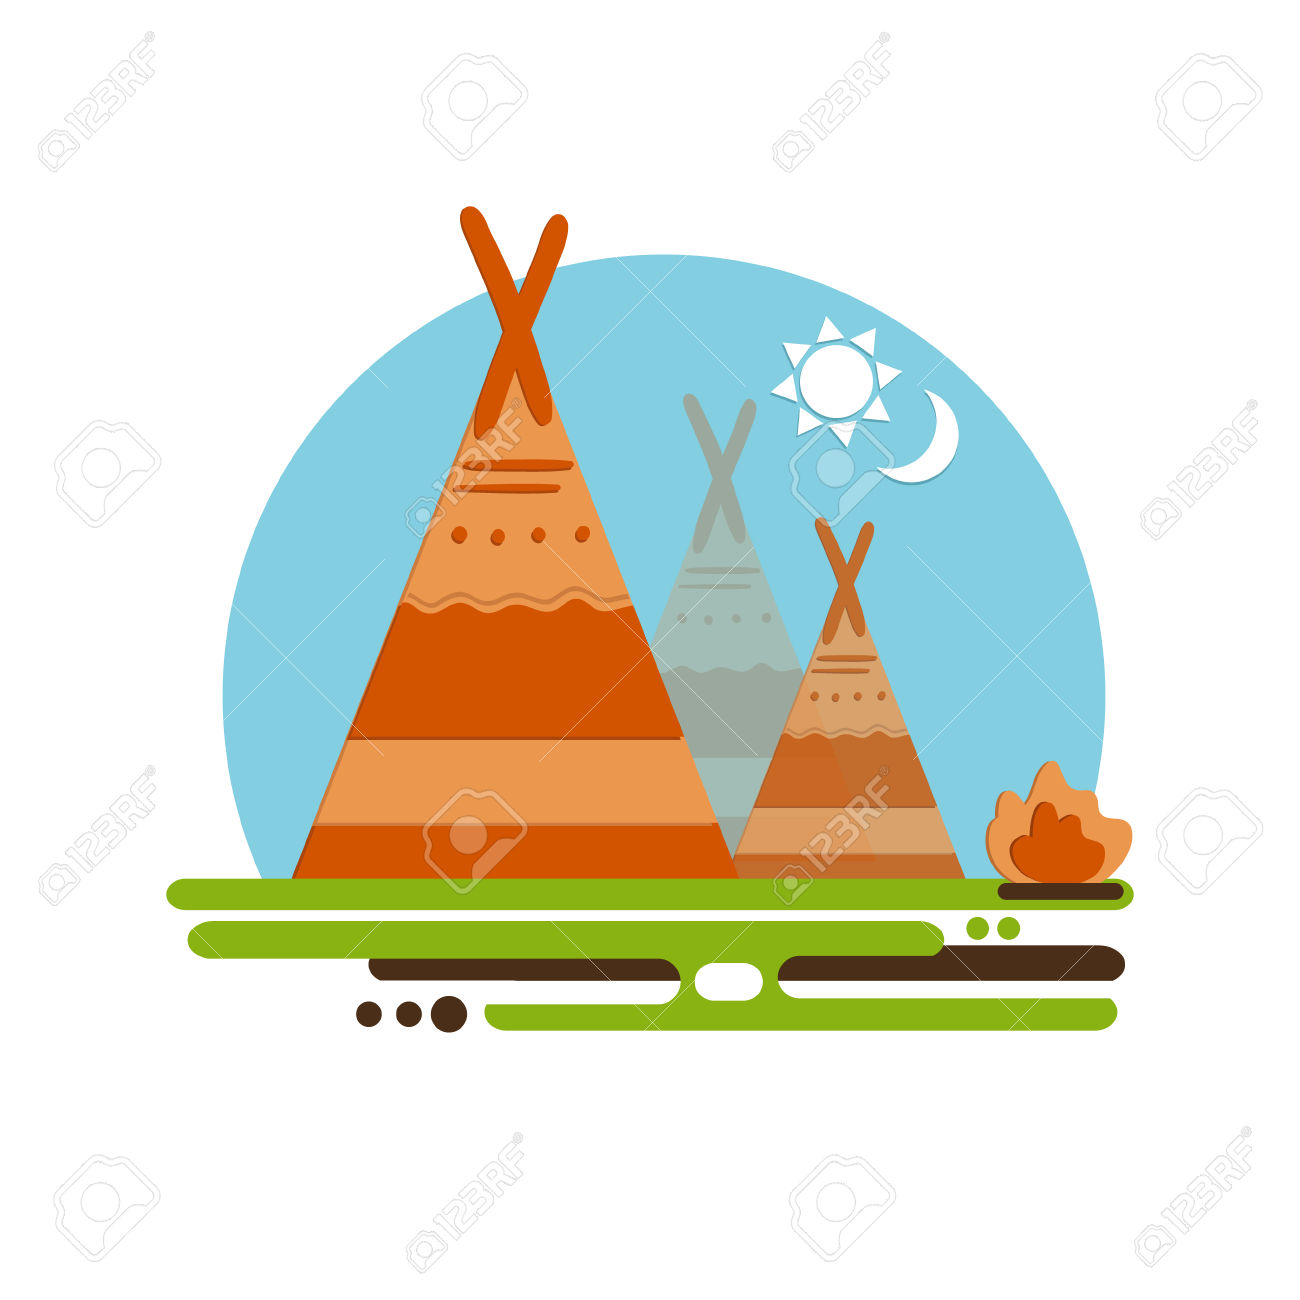 Indian Teepee Vector Concept. Native American Indian House. Indian.